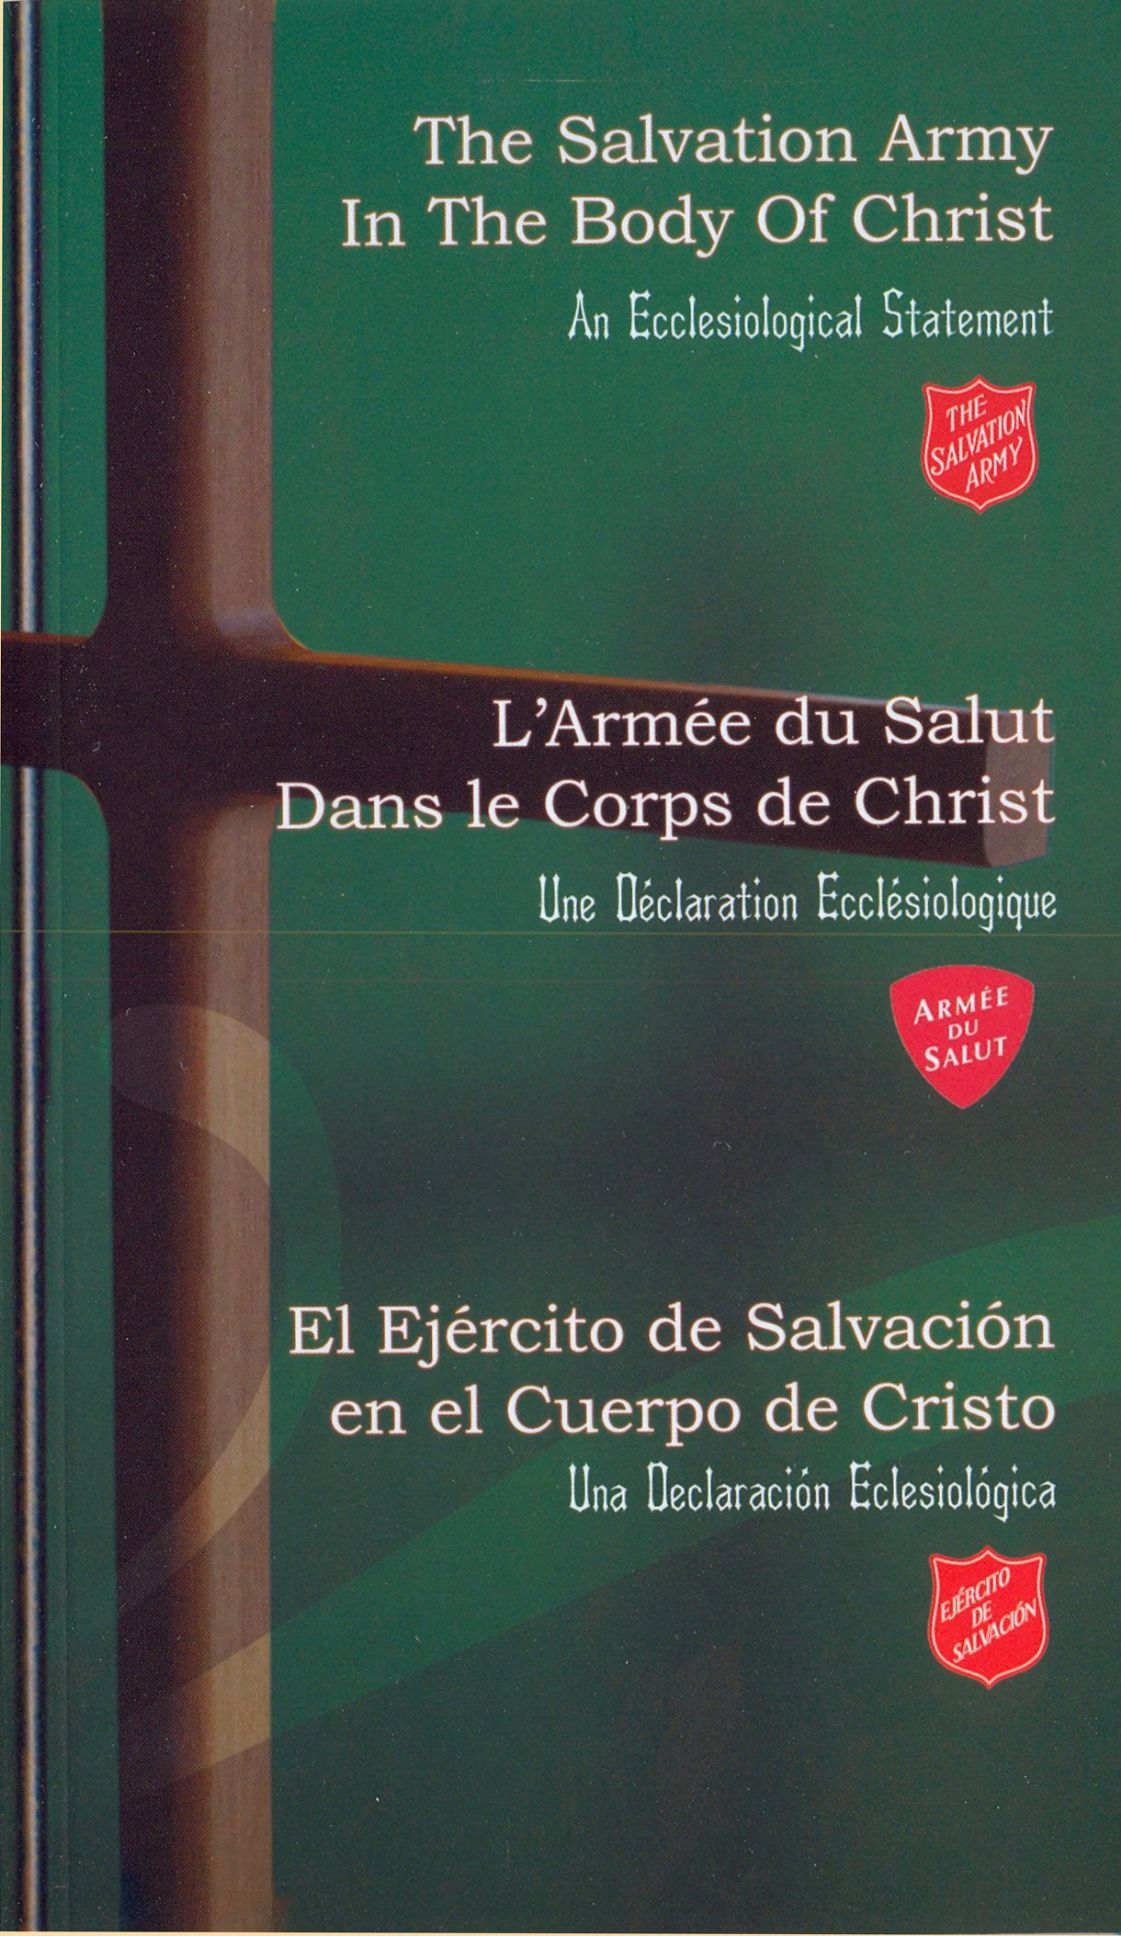 The Salvation Army - In the Body of Christ